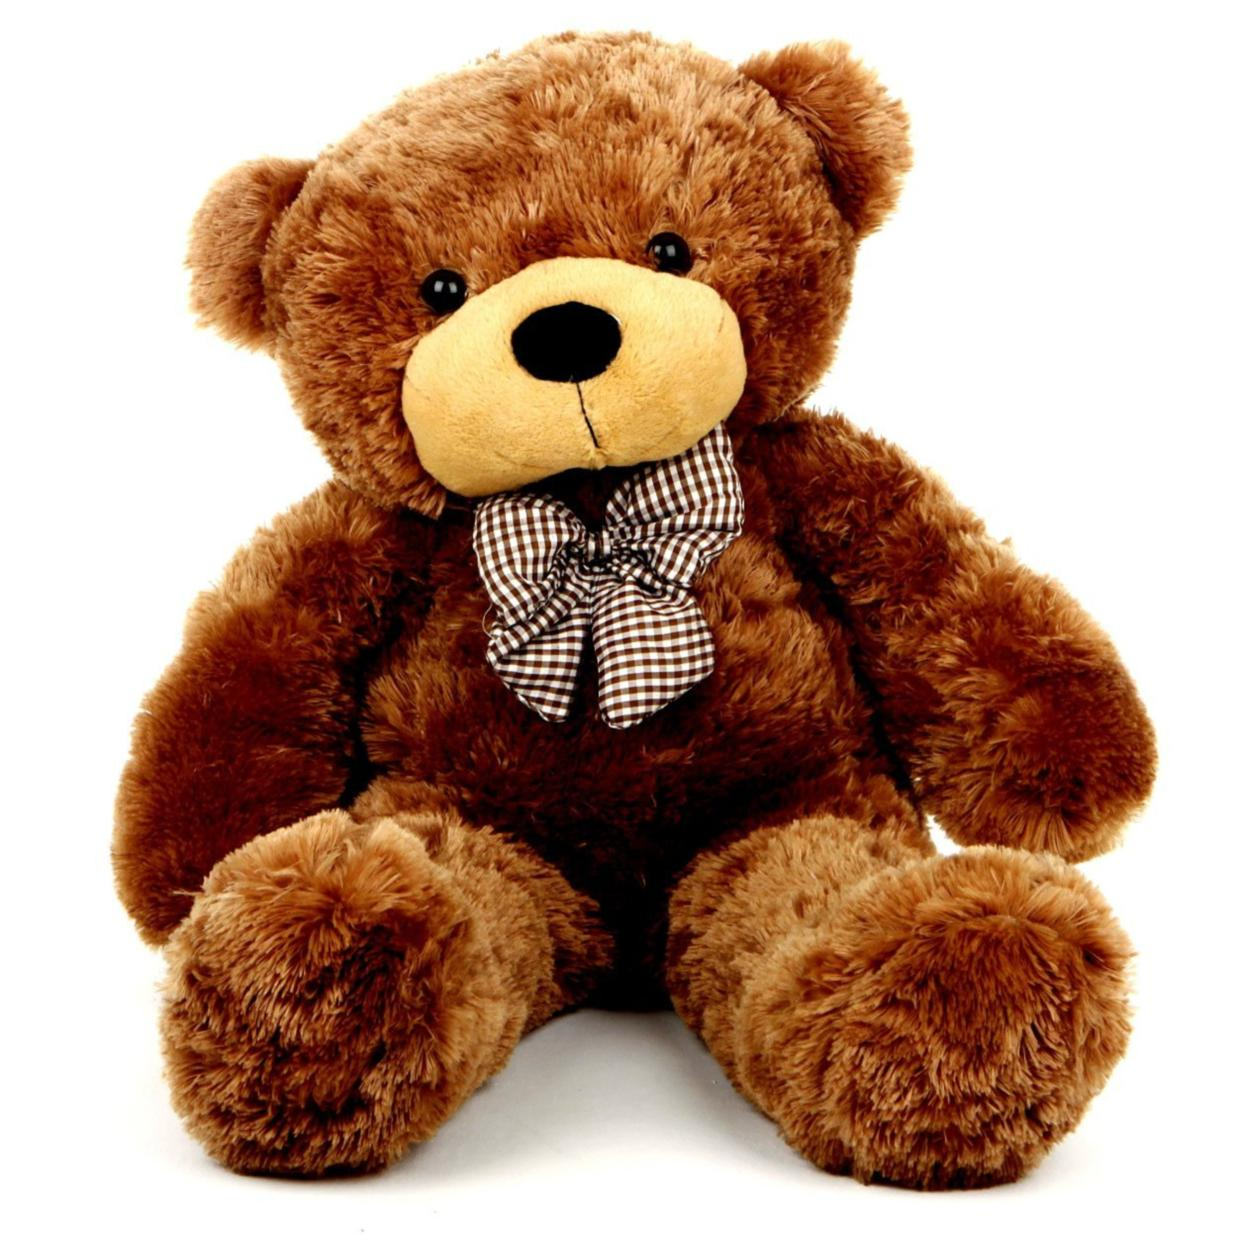 Happy Teddy Day! Quotes – SMS – Images (HD) of Teddy Bears ...